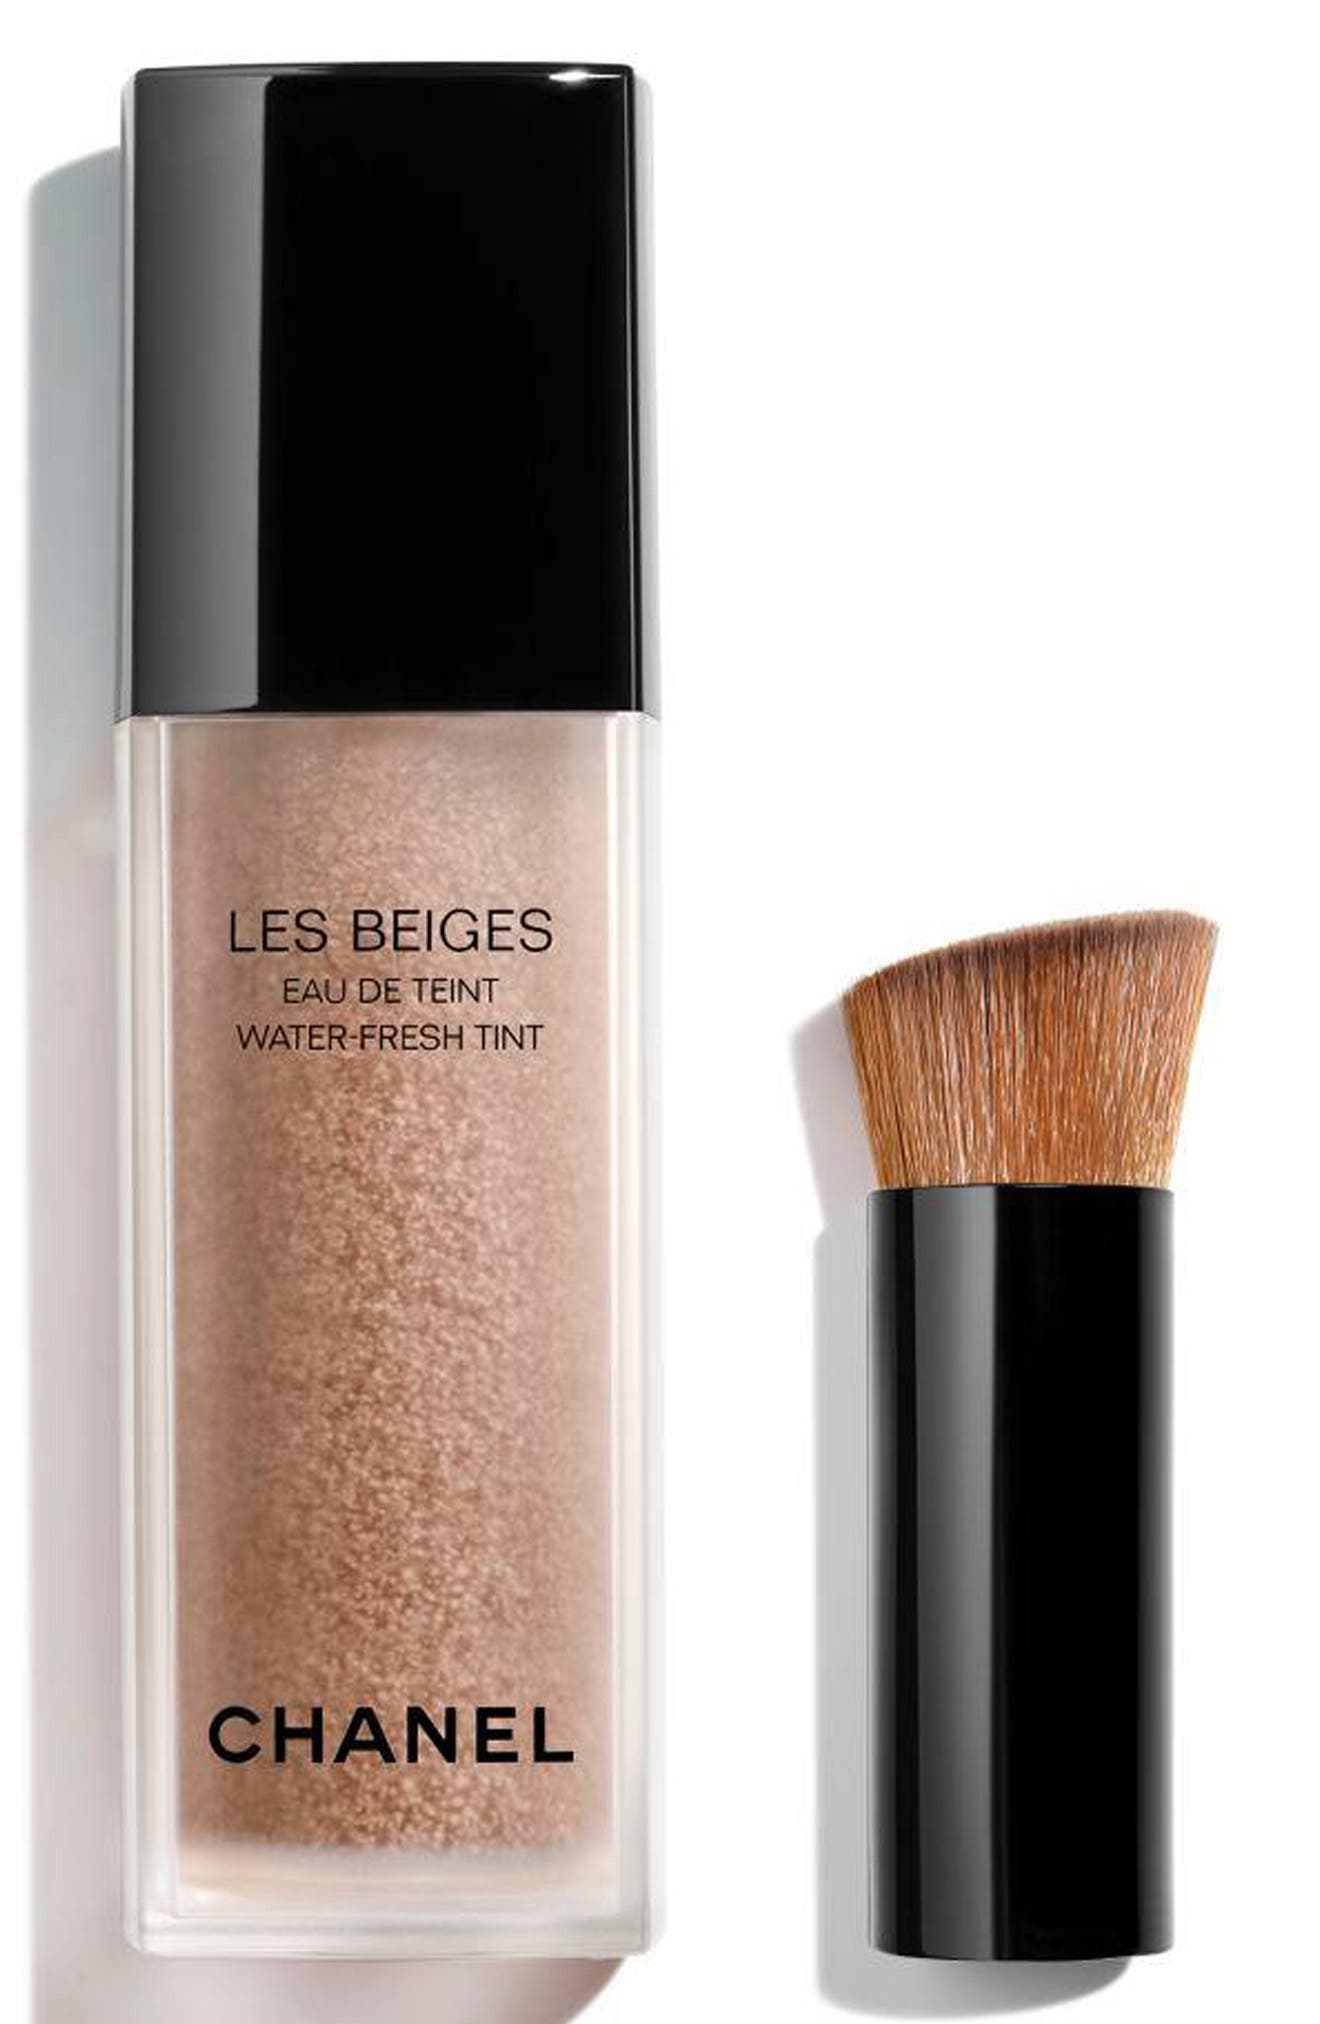 Les Beiges Water Fresh Tint by Chanel